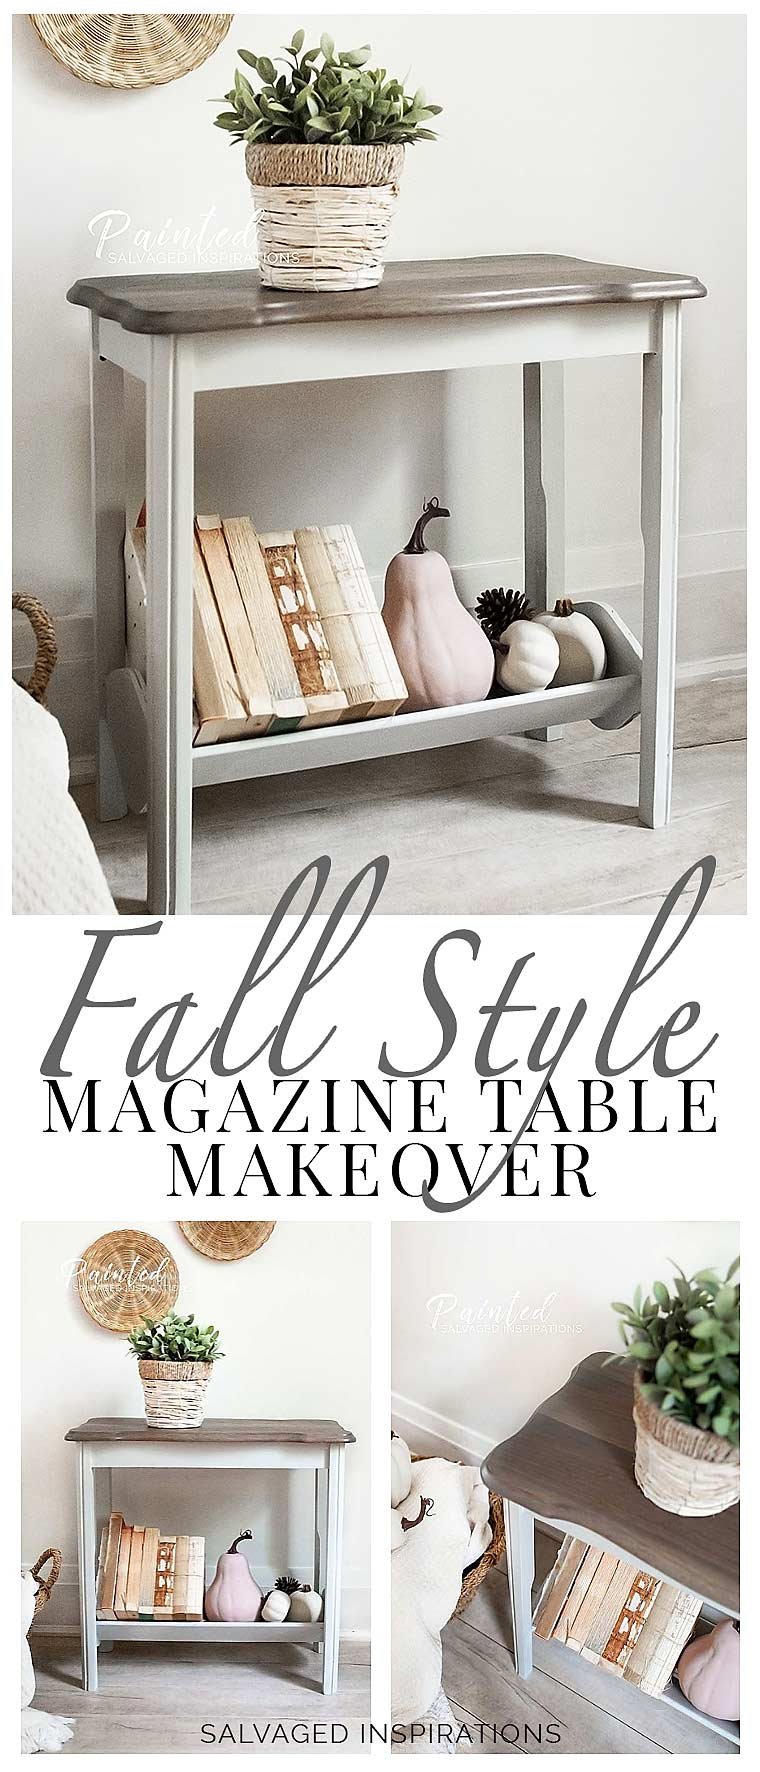 Fall Style Magazine Table Makeover1